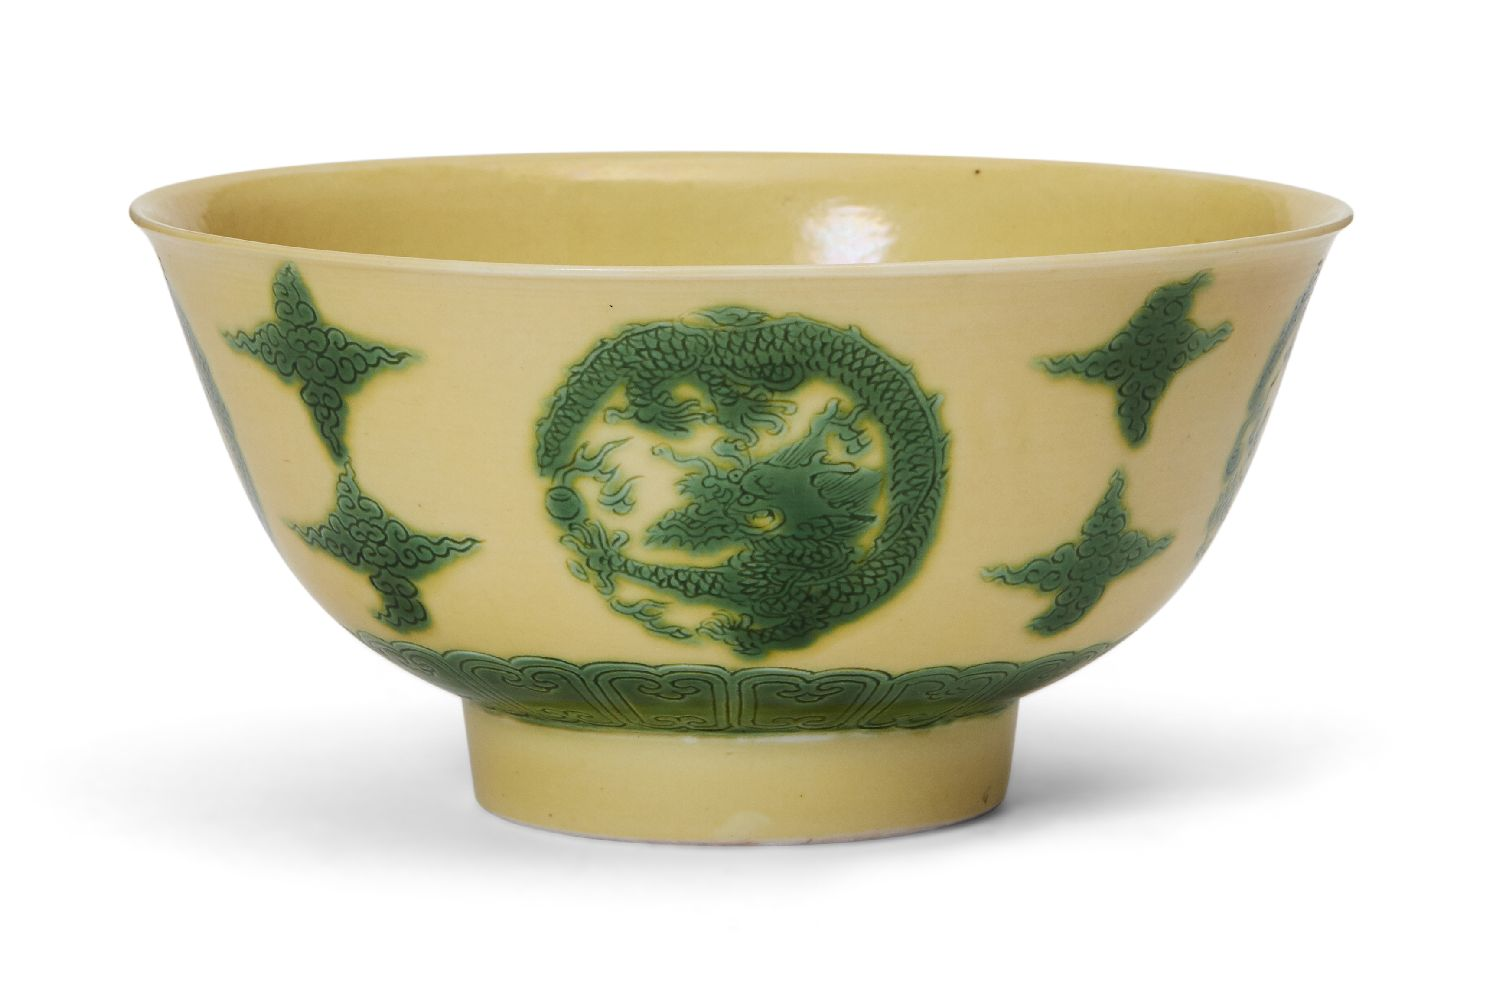 A Chinese porcelain yellow-ground green-enamelled 'dragon medallion' bowl, Kangxi mark and of the